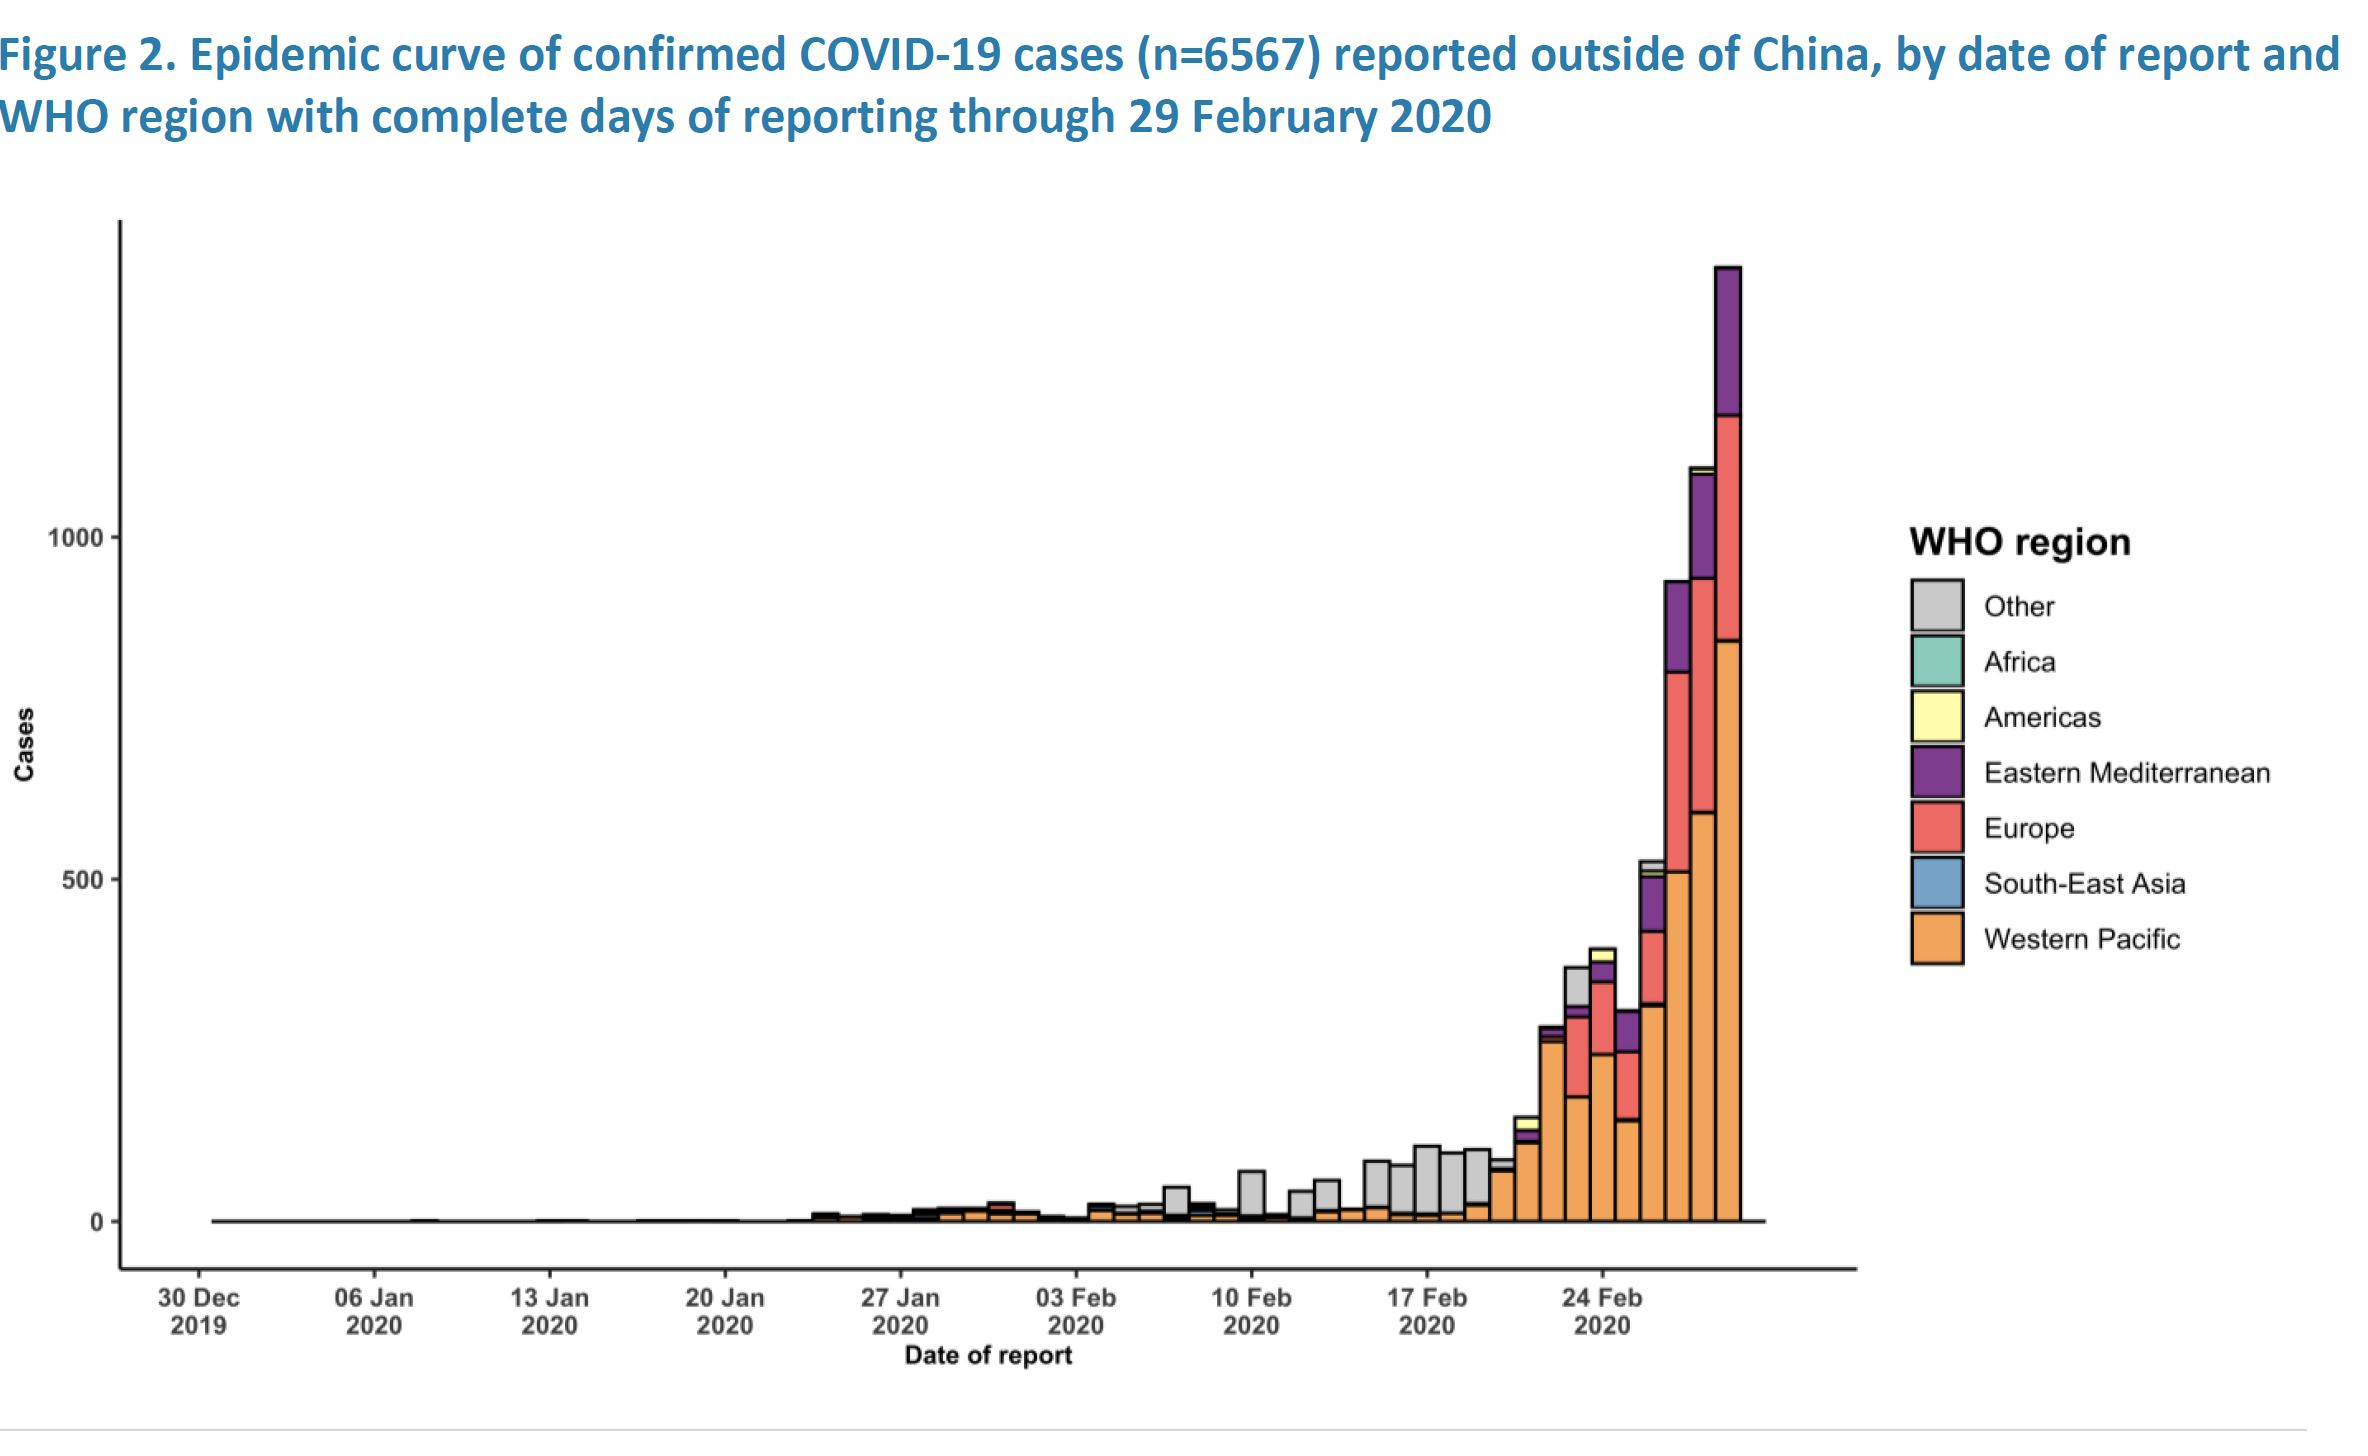 Epidemic Curve of COVID-19